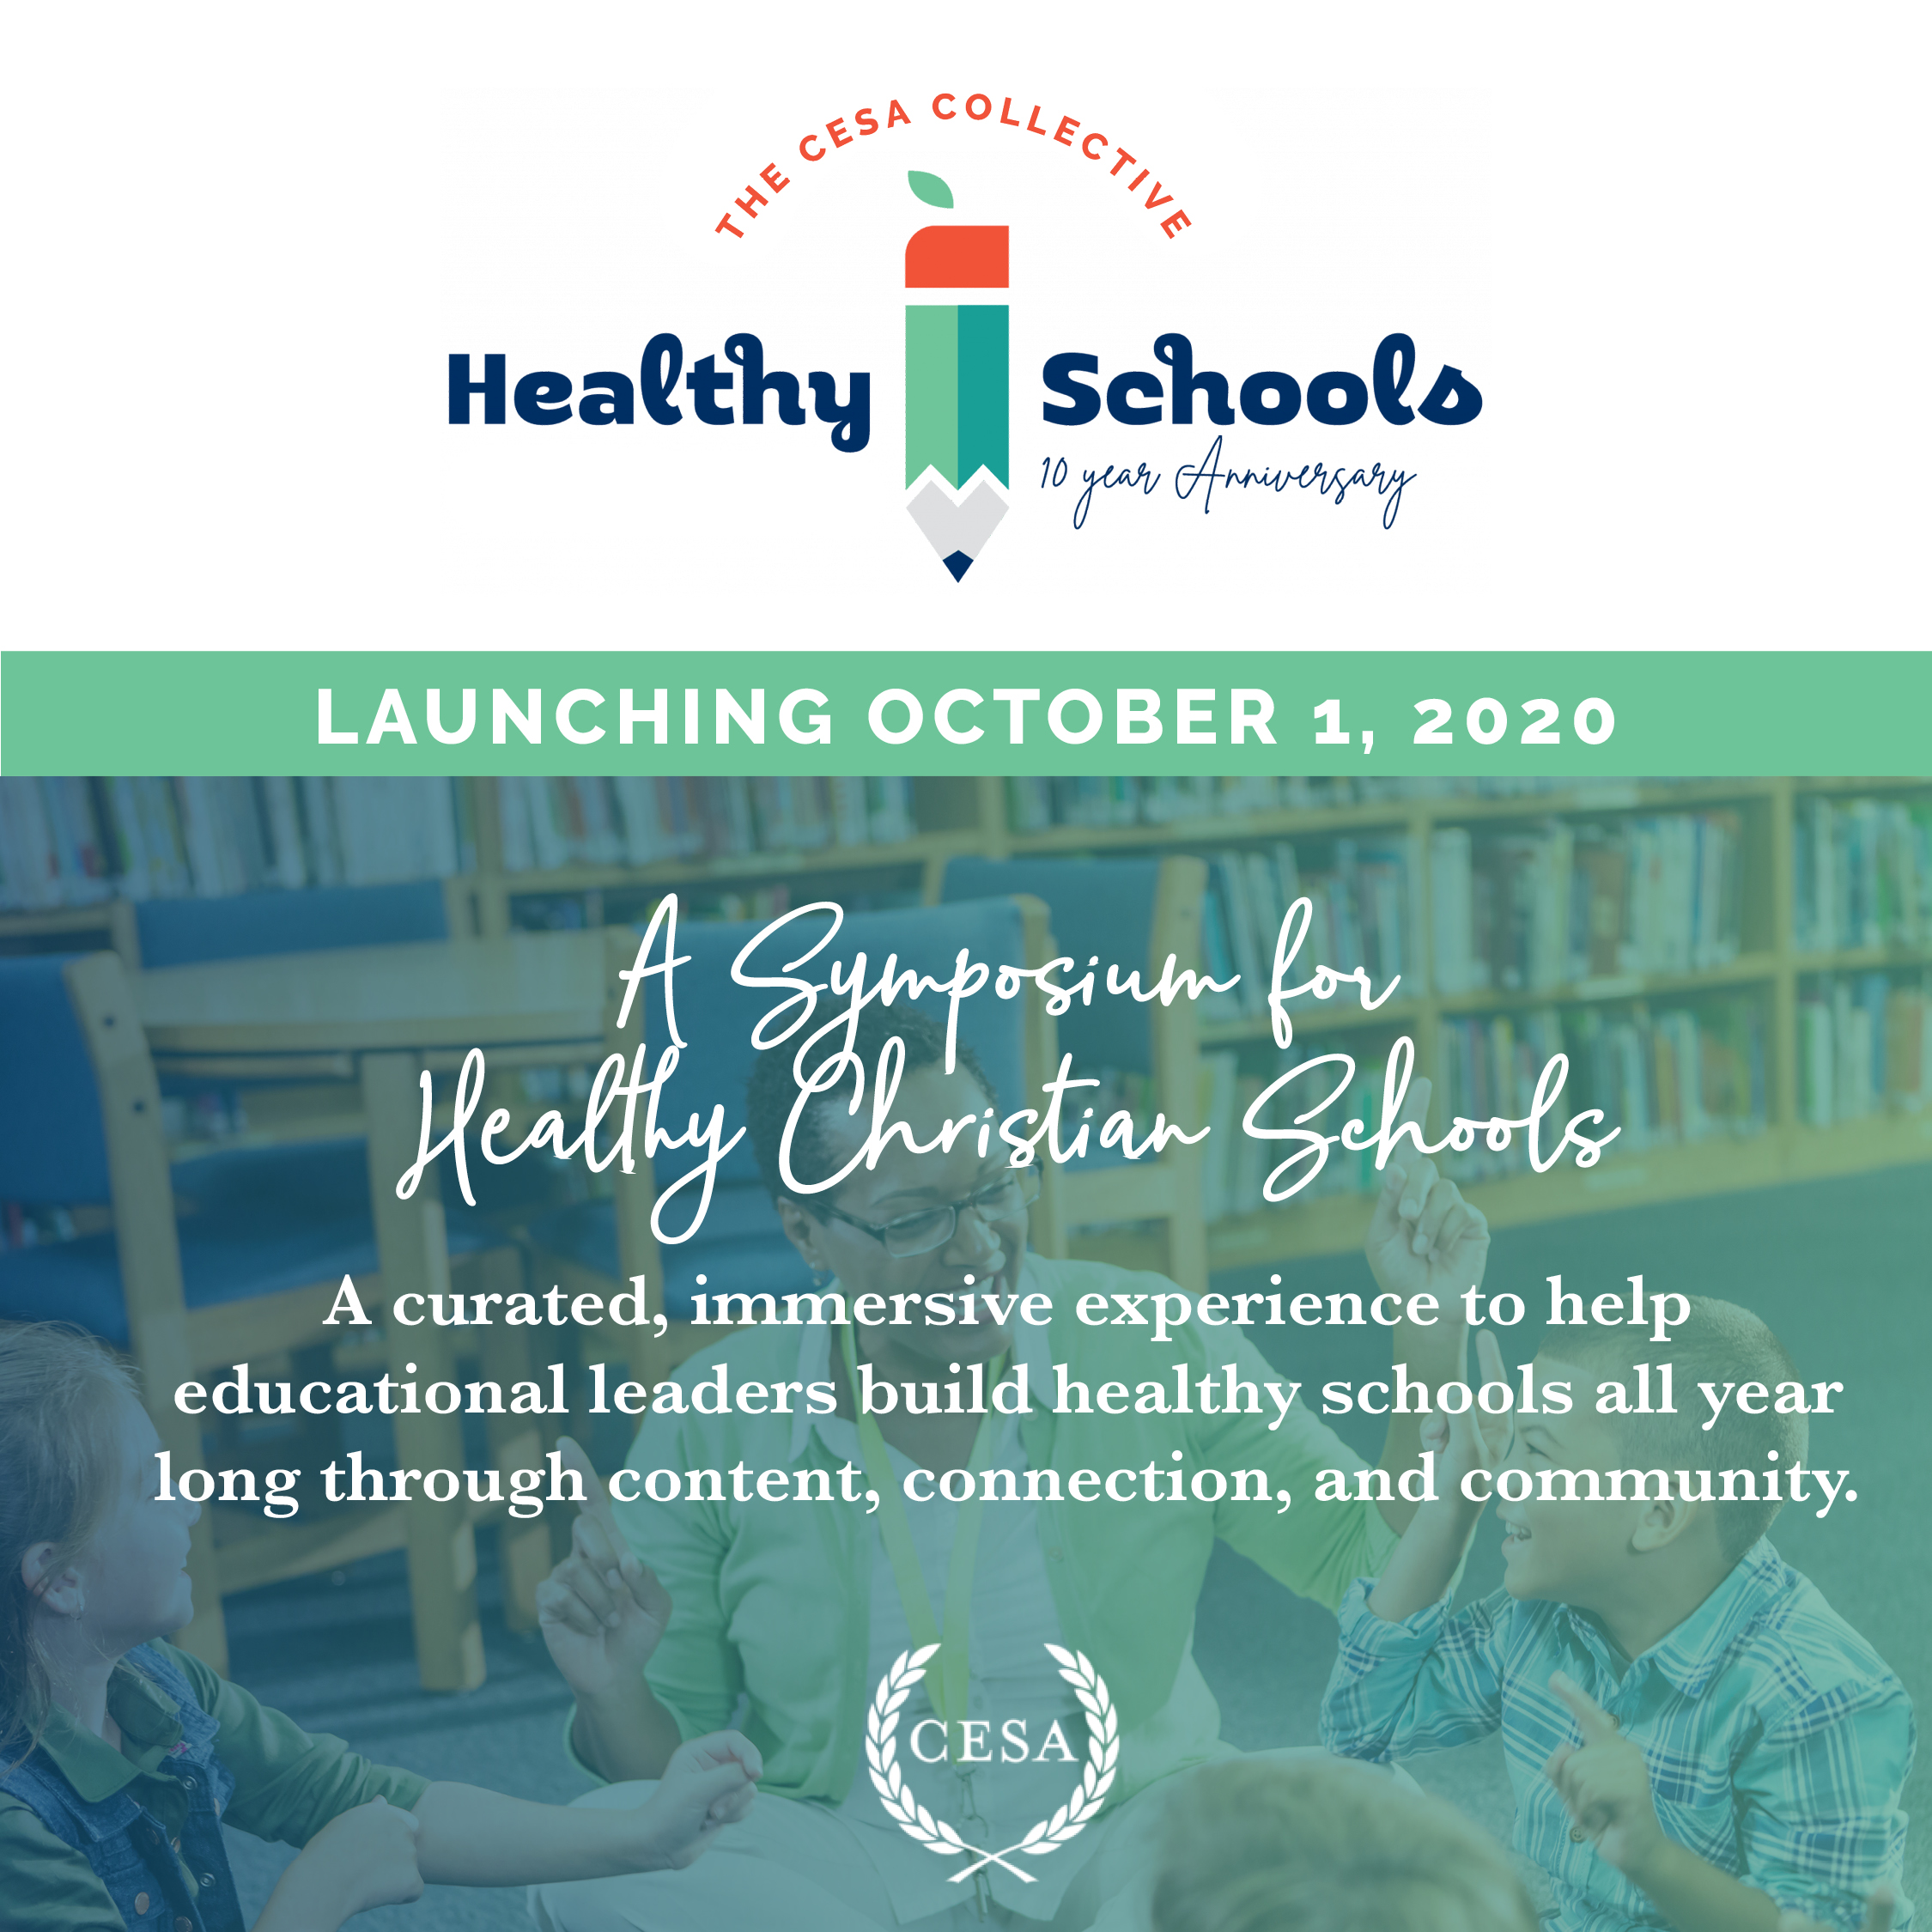 2020 CESA Collective: The Symposium for Healthy Christian Schools